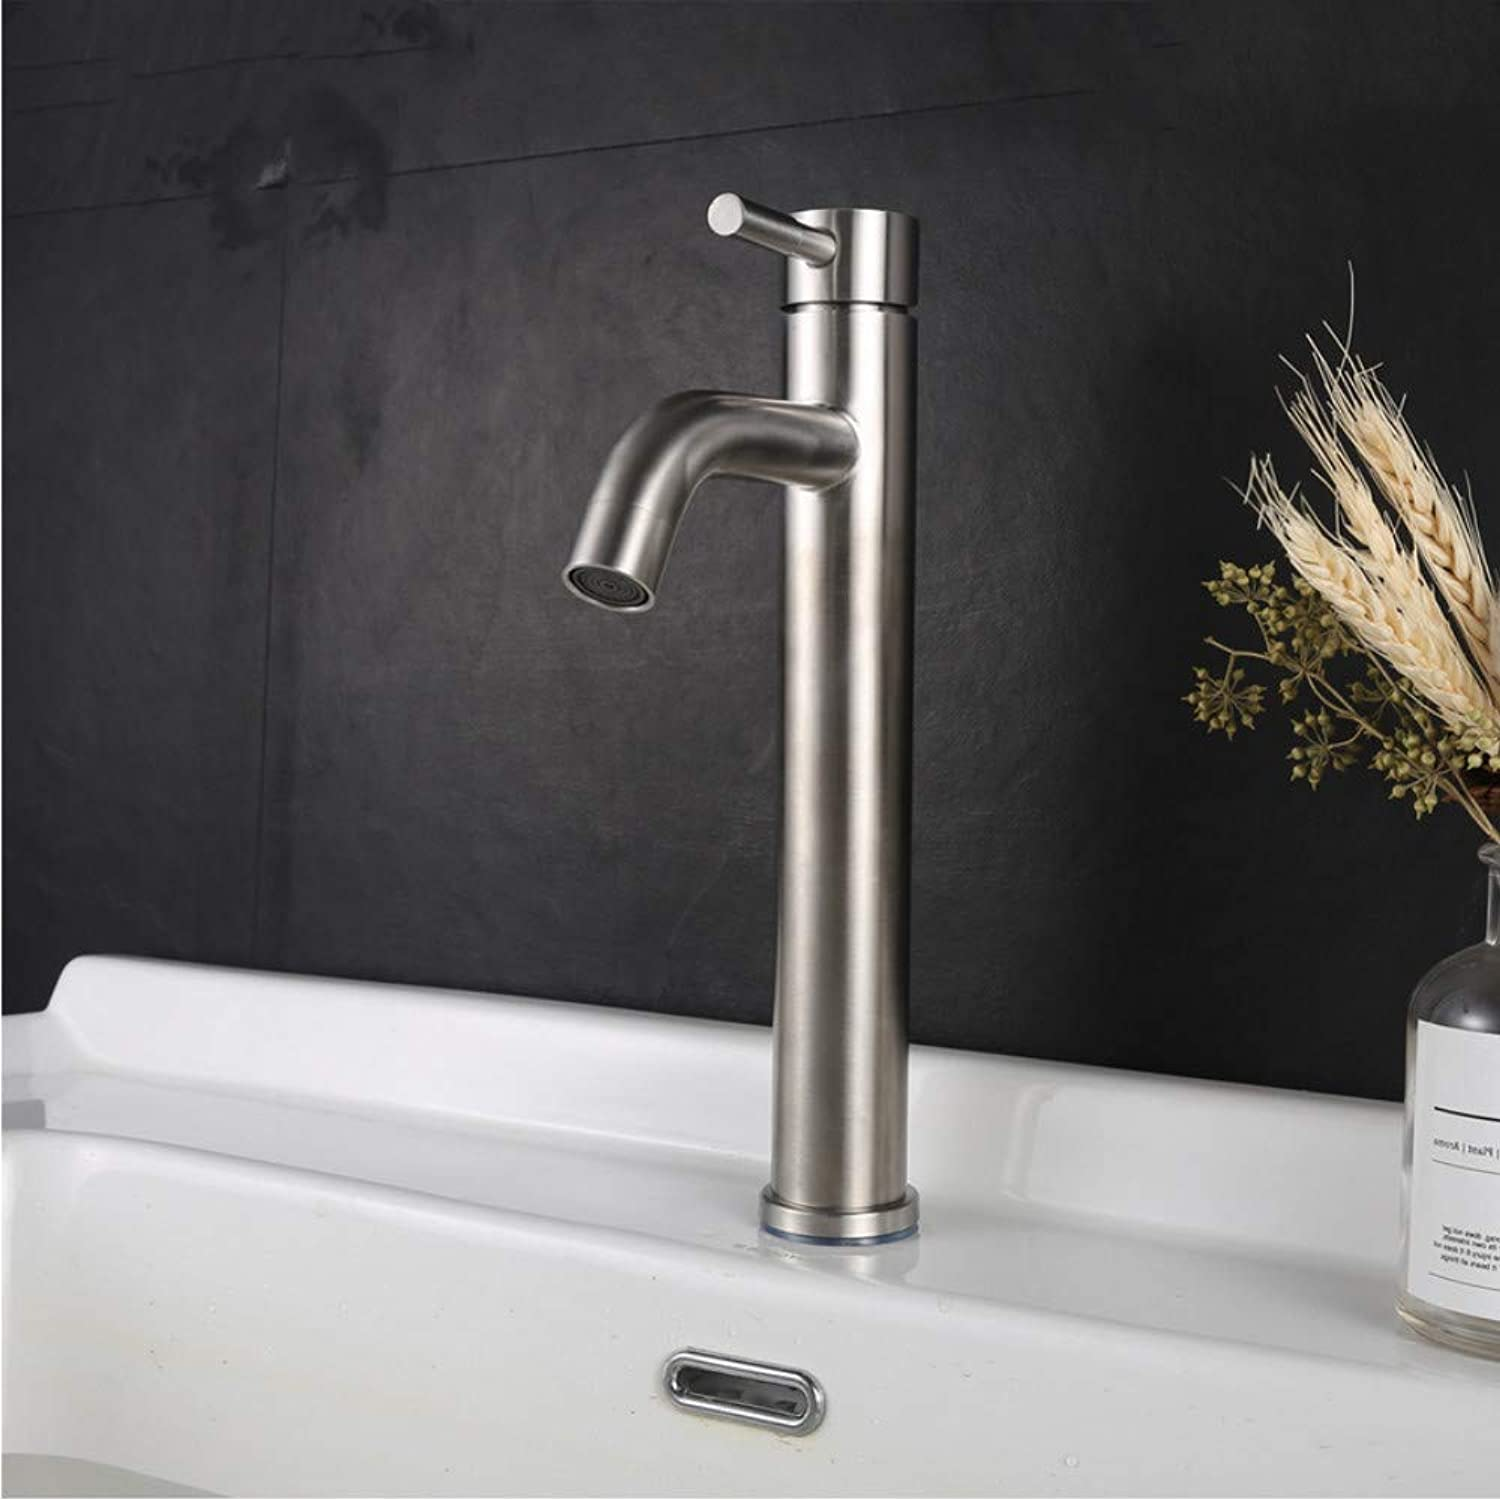 LLLYZZ Torneira Bathroom Faucet Robinet 304 Stainless Steel kran Vanity Basin Faucet grifo lavabo Hot and Cold Water Tap